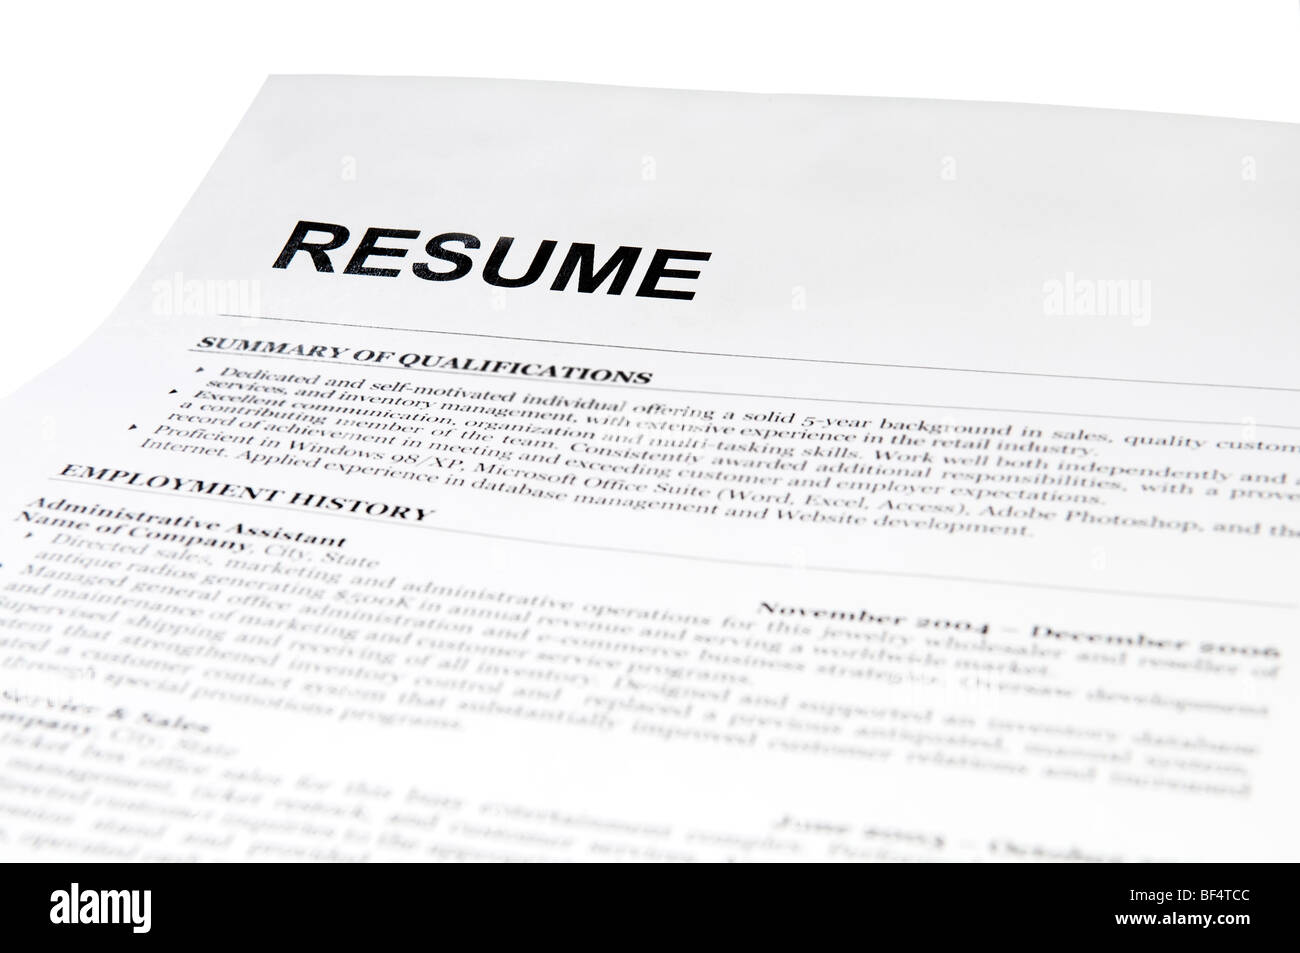 Resume And Cover Letter Stock Photos  Resume And Cover